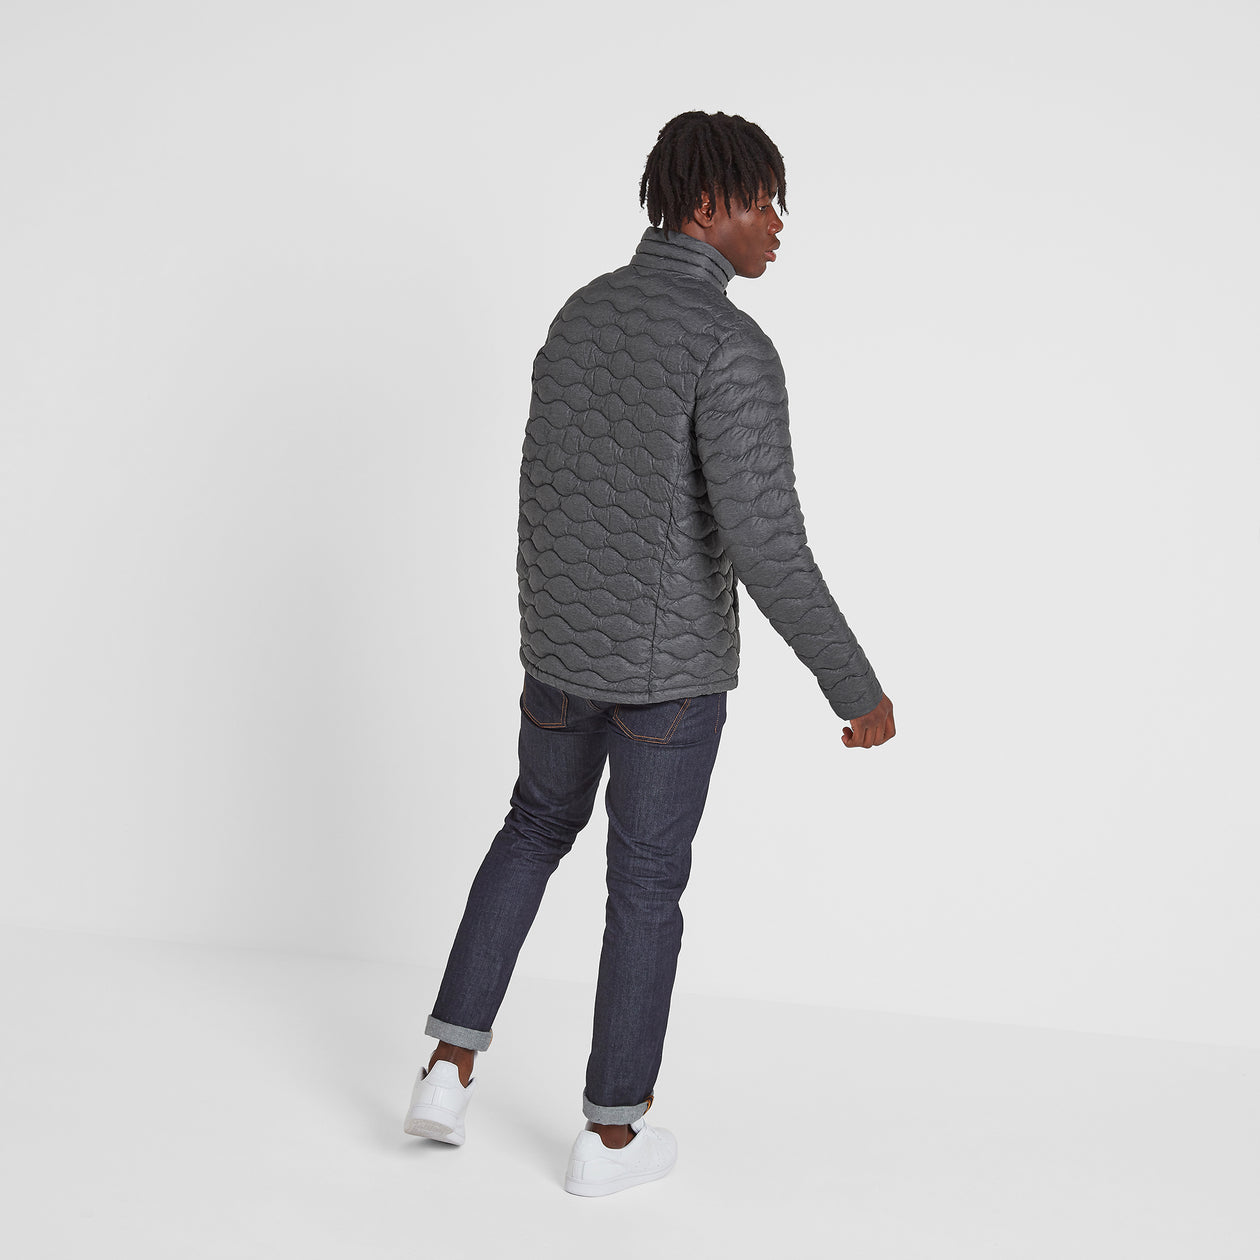 Brimham Mens Thermal Jacket - Dark Grey Marl image 4